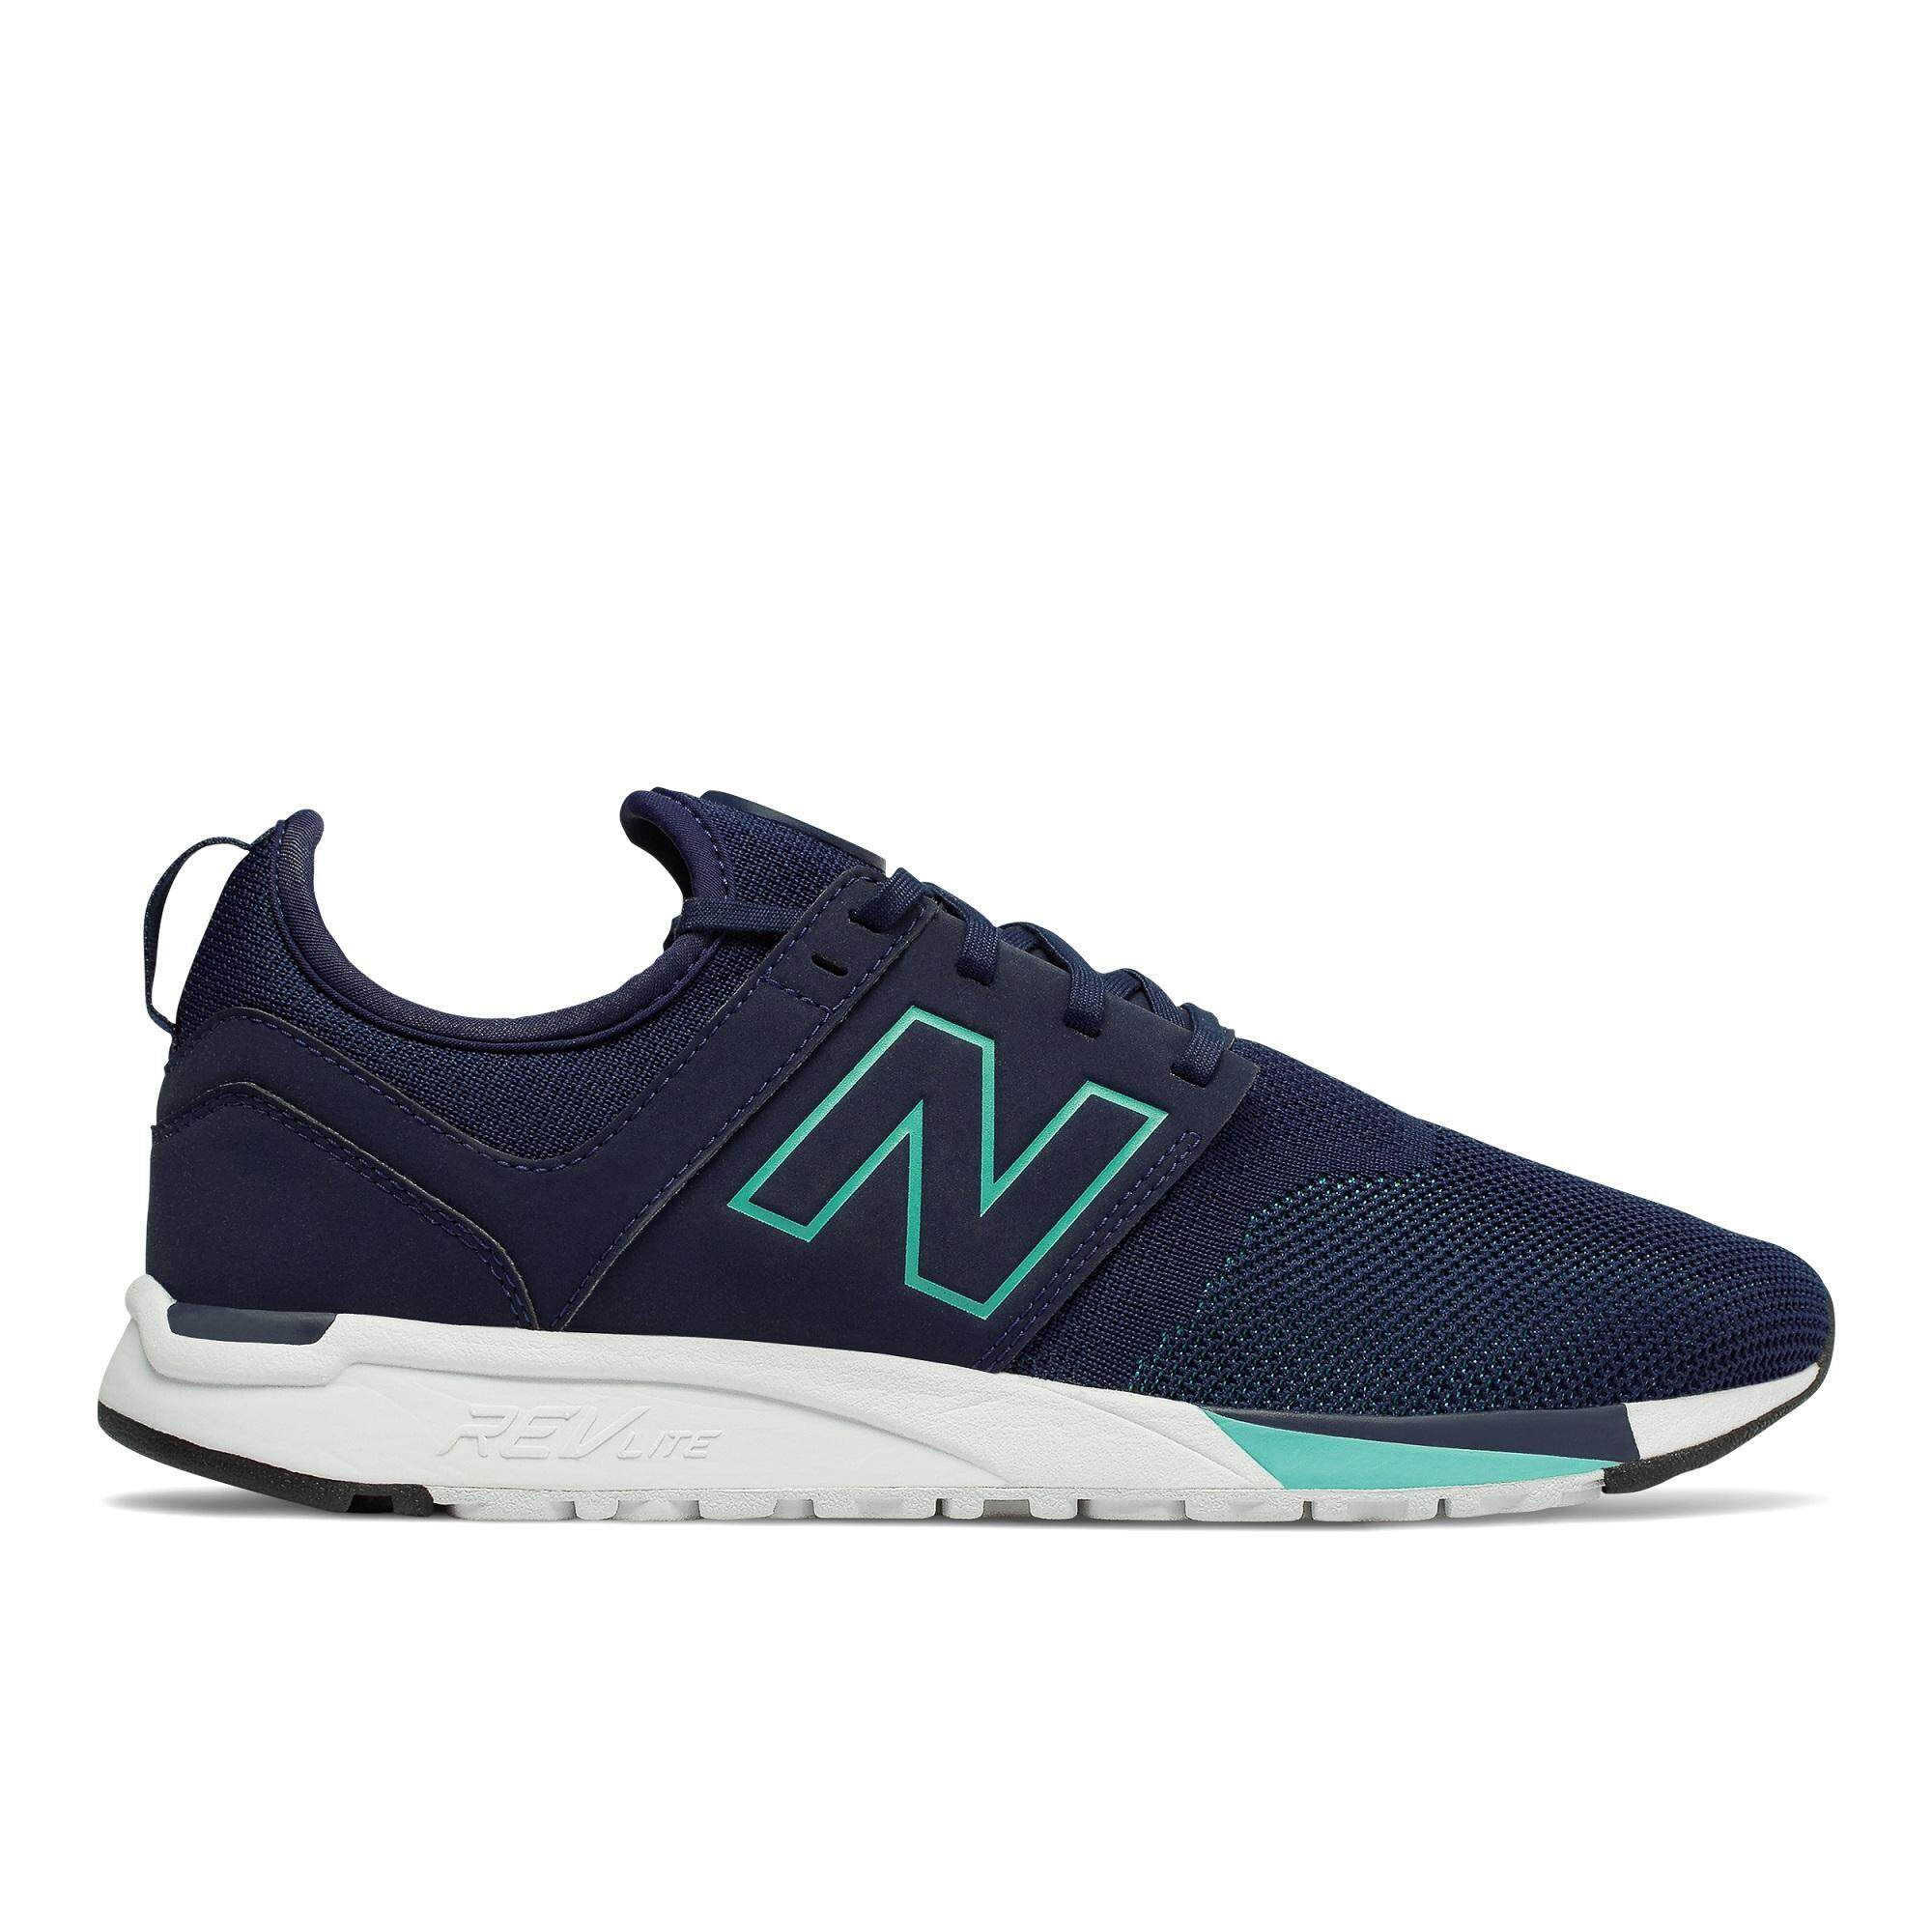 0e45653184 New Balance Men's Sports Shoes - Running Shoes price in Malaysia ...